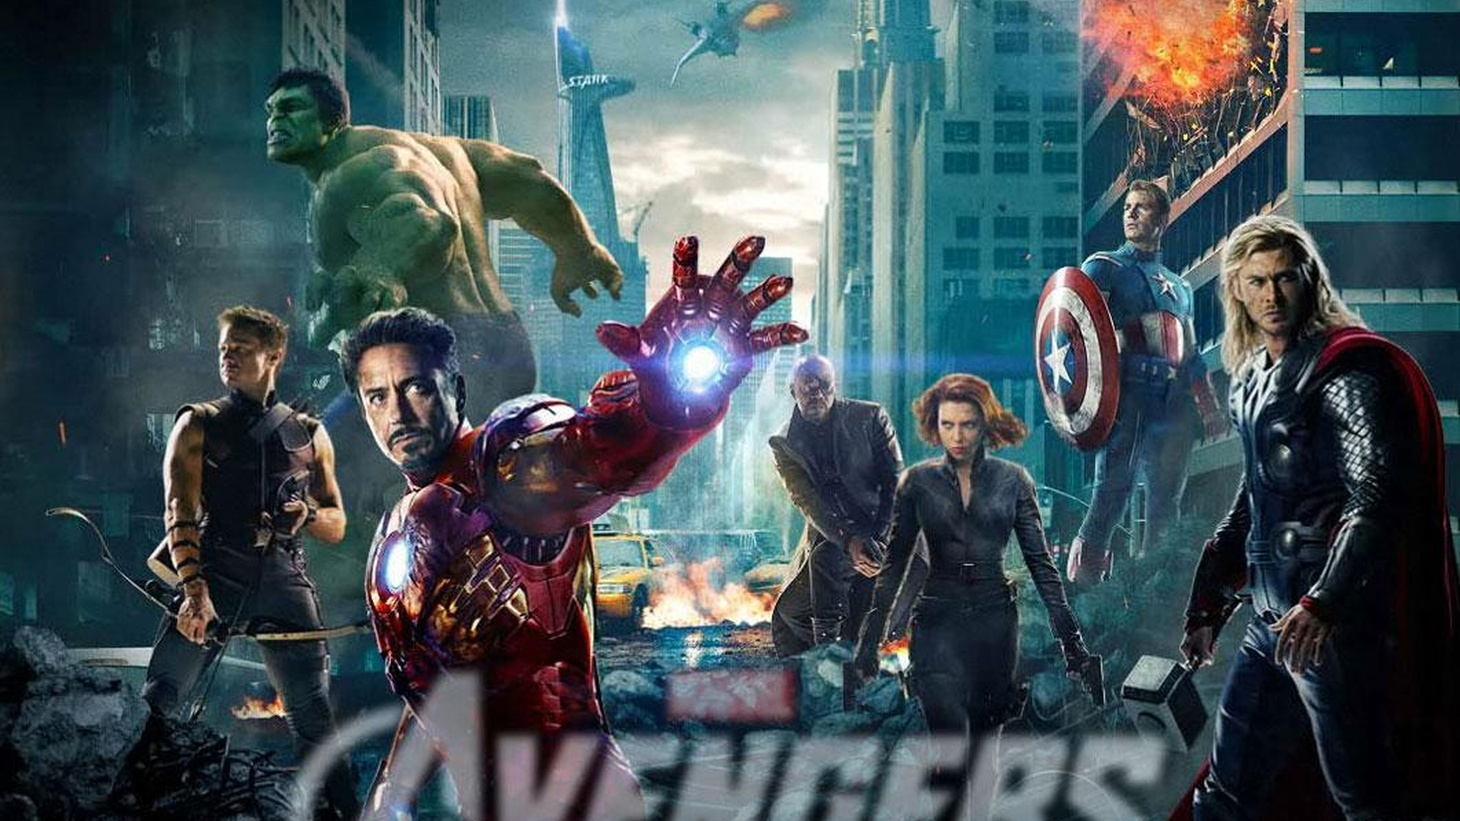 """What if Marvel gave a party and everybody came? Joe Morgenstern on Joss Whedon's """"fitfully enjoyable convocation of Marvel's comic book superheroes..."""""""